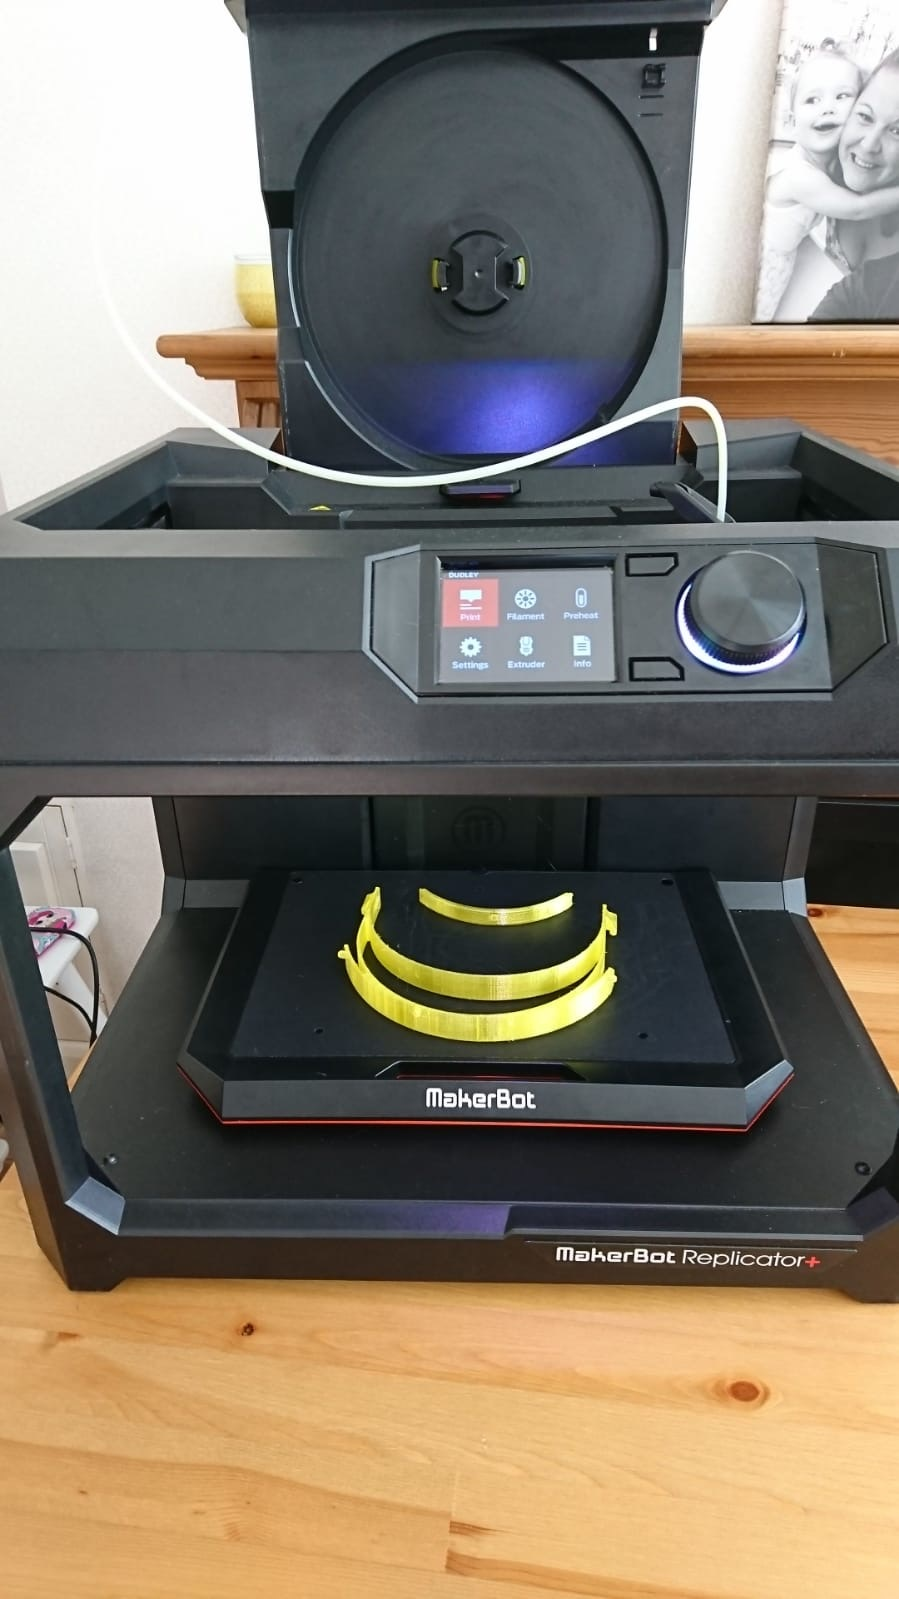 photograph showing 3D printer